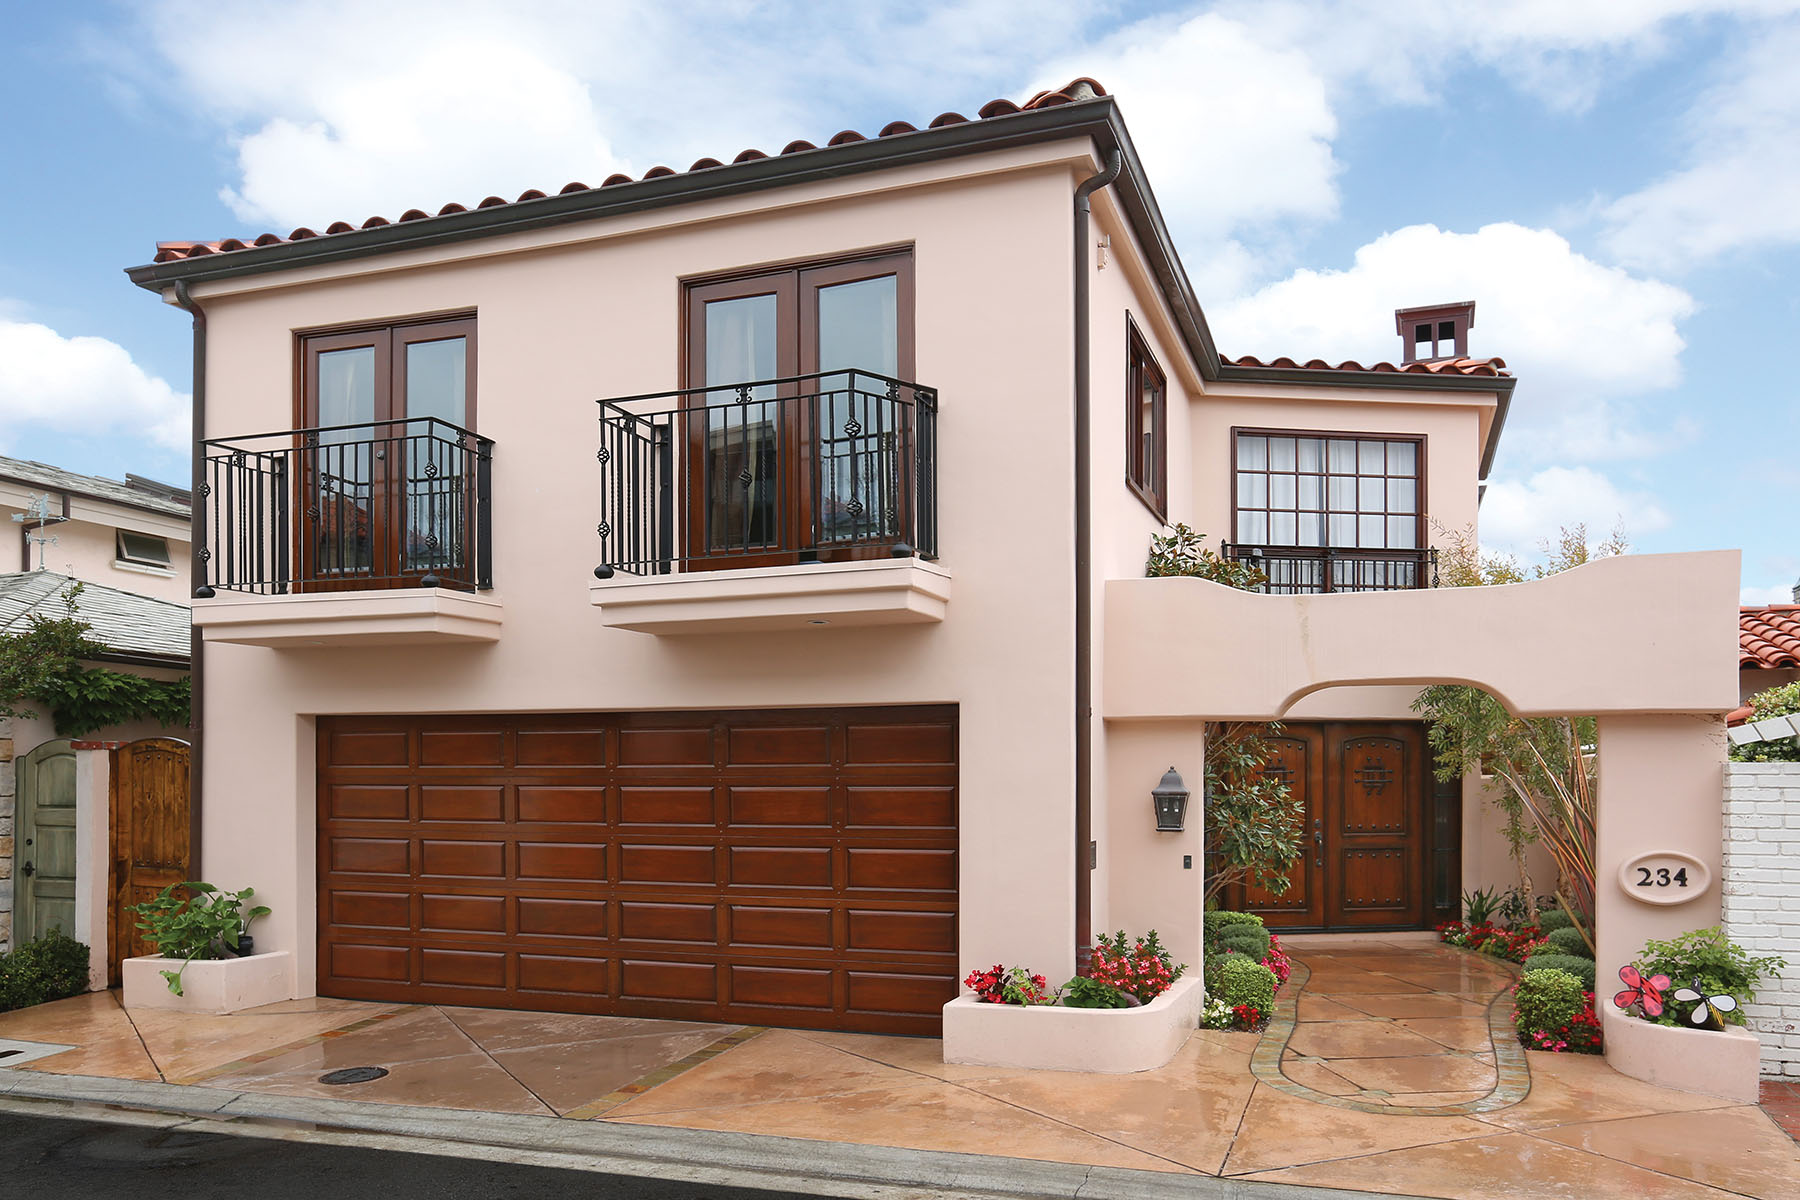 Single Family Home for Sale at 234 Via Graziana Newport Beach, California 90663 United States